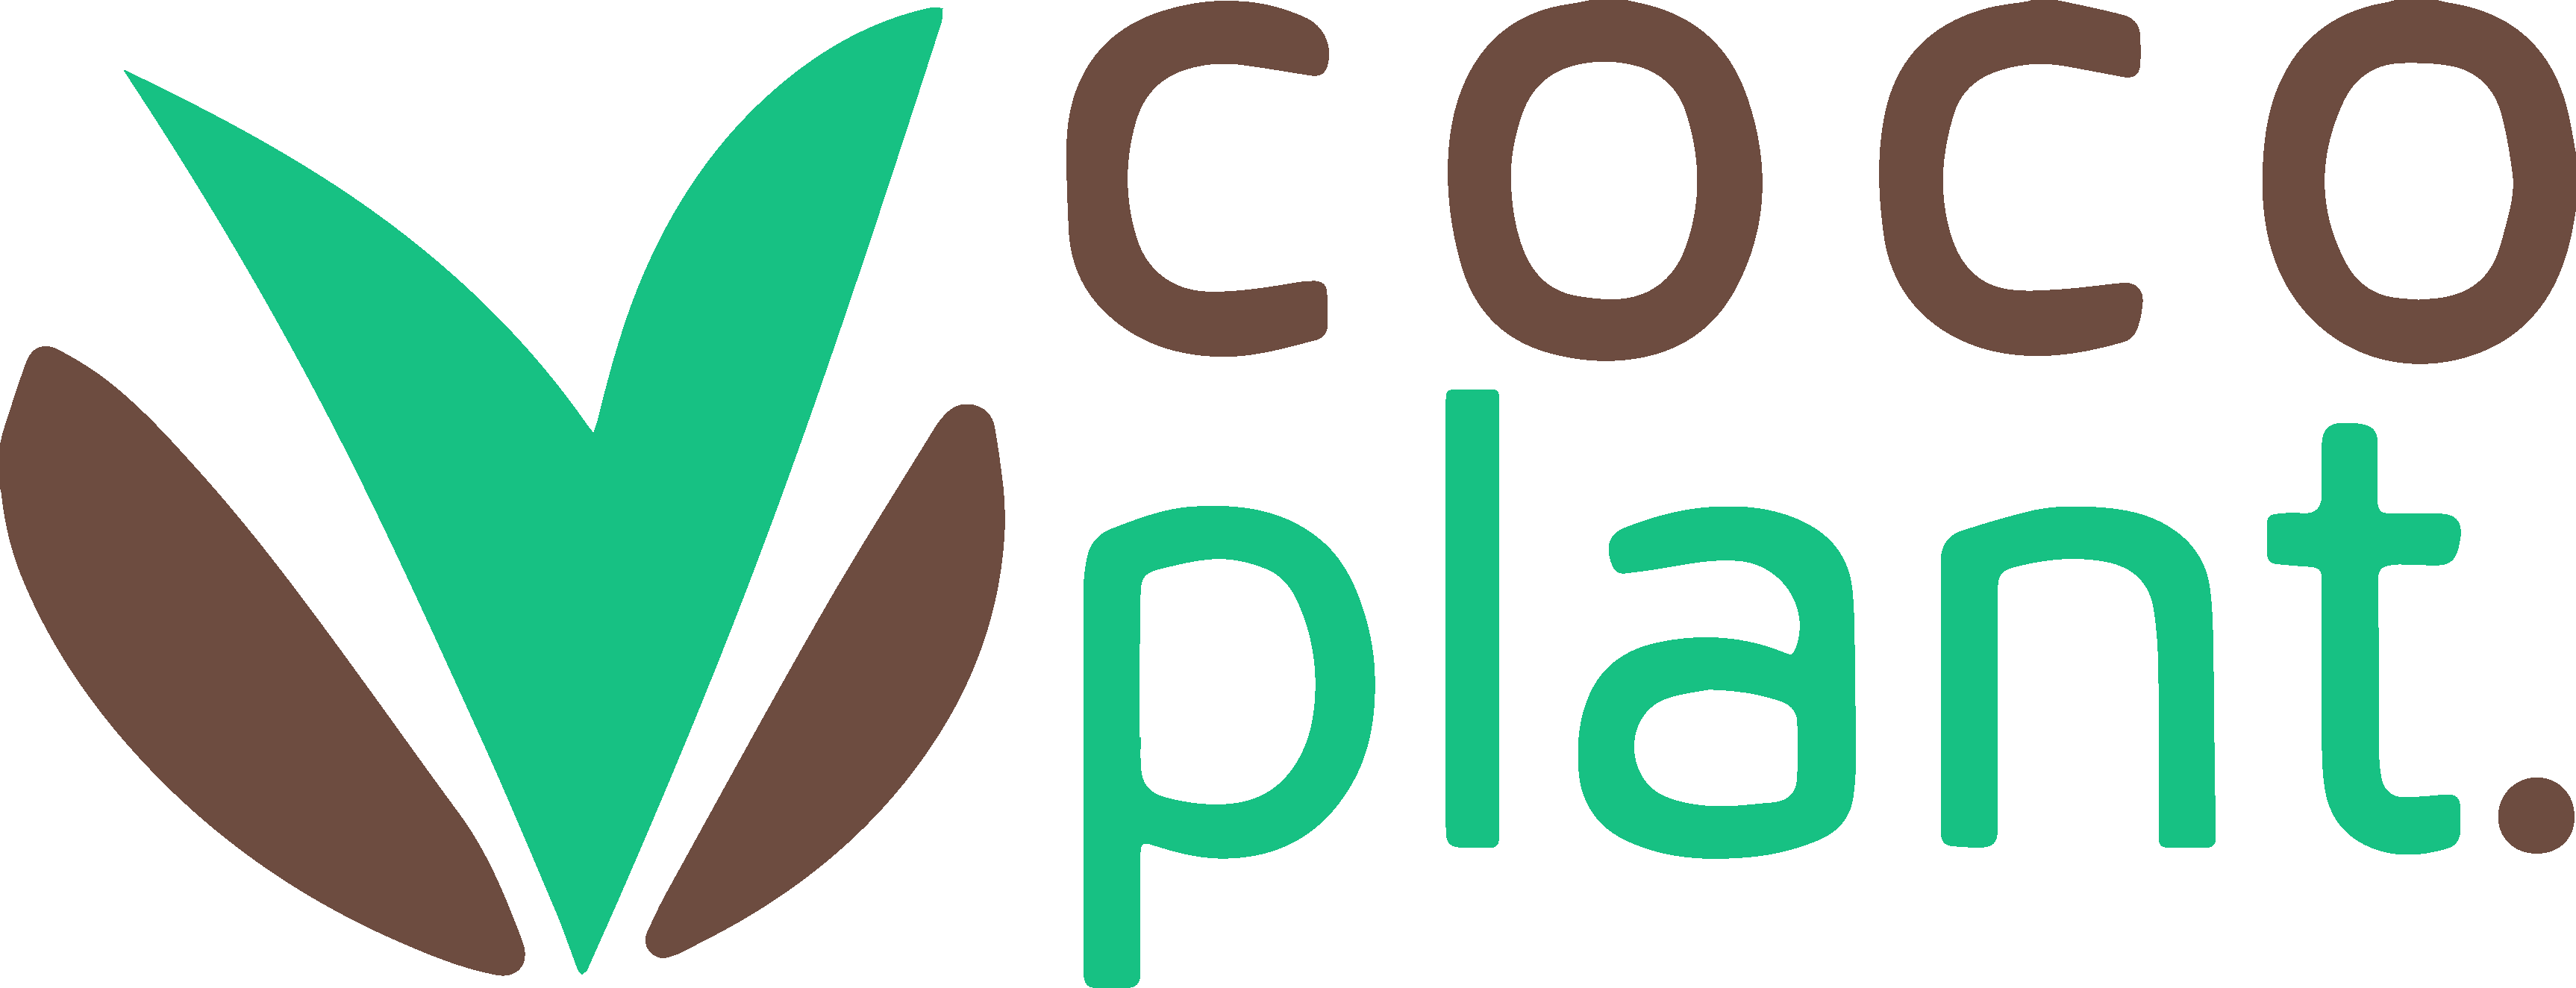 CocoPlant footer logo